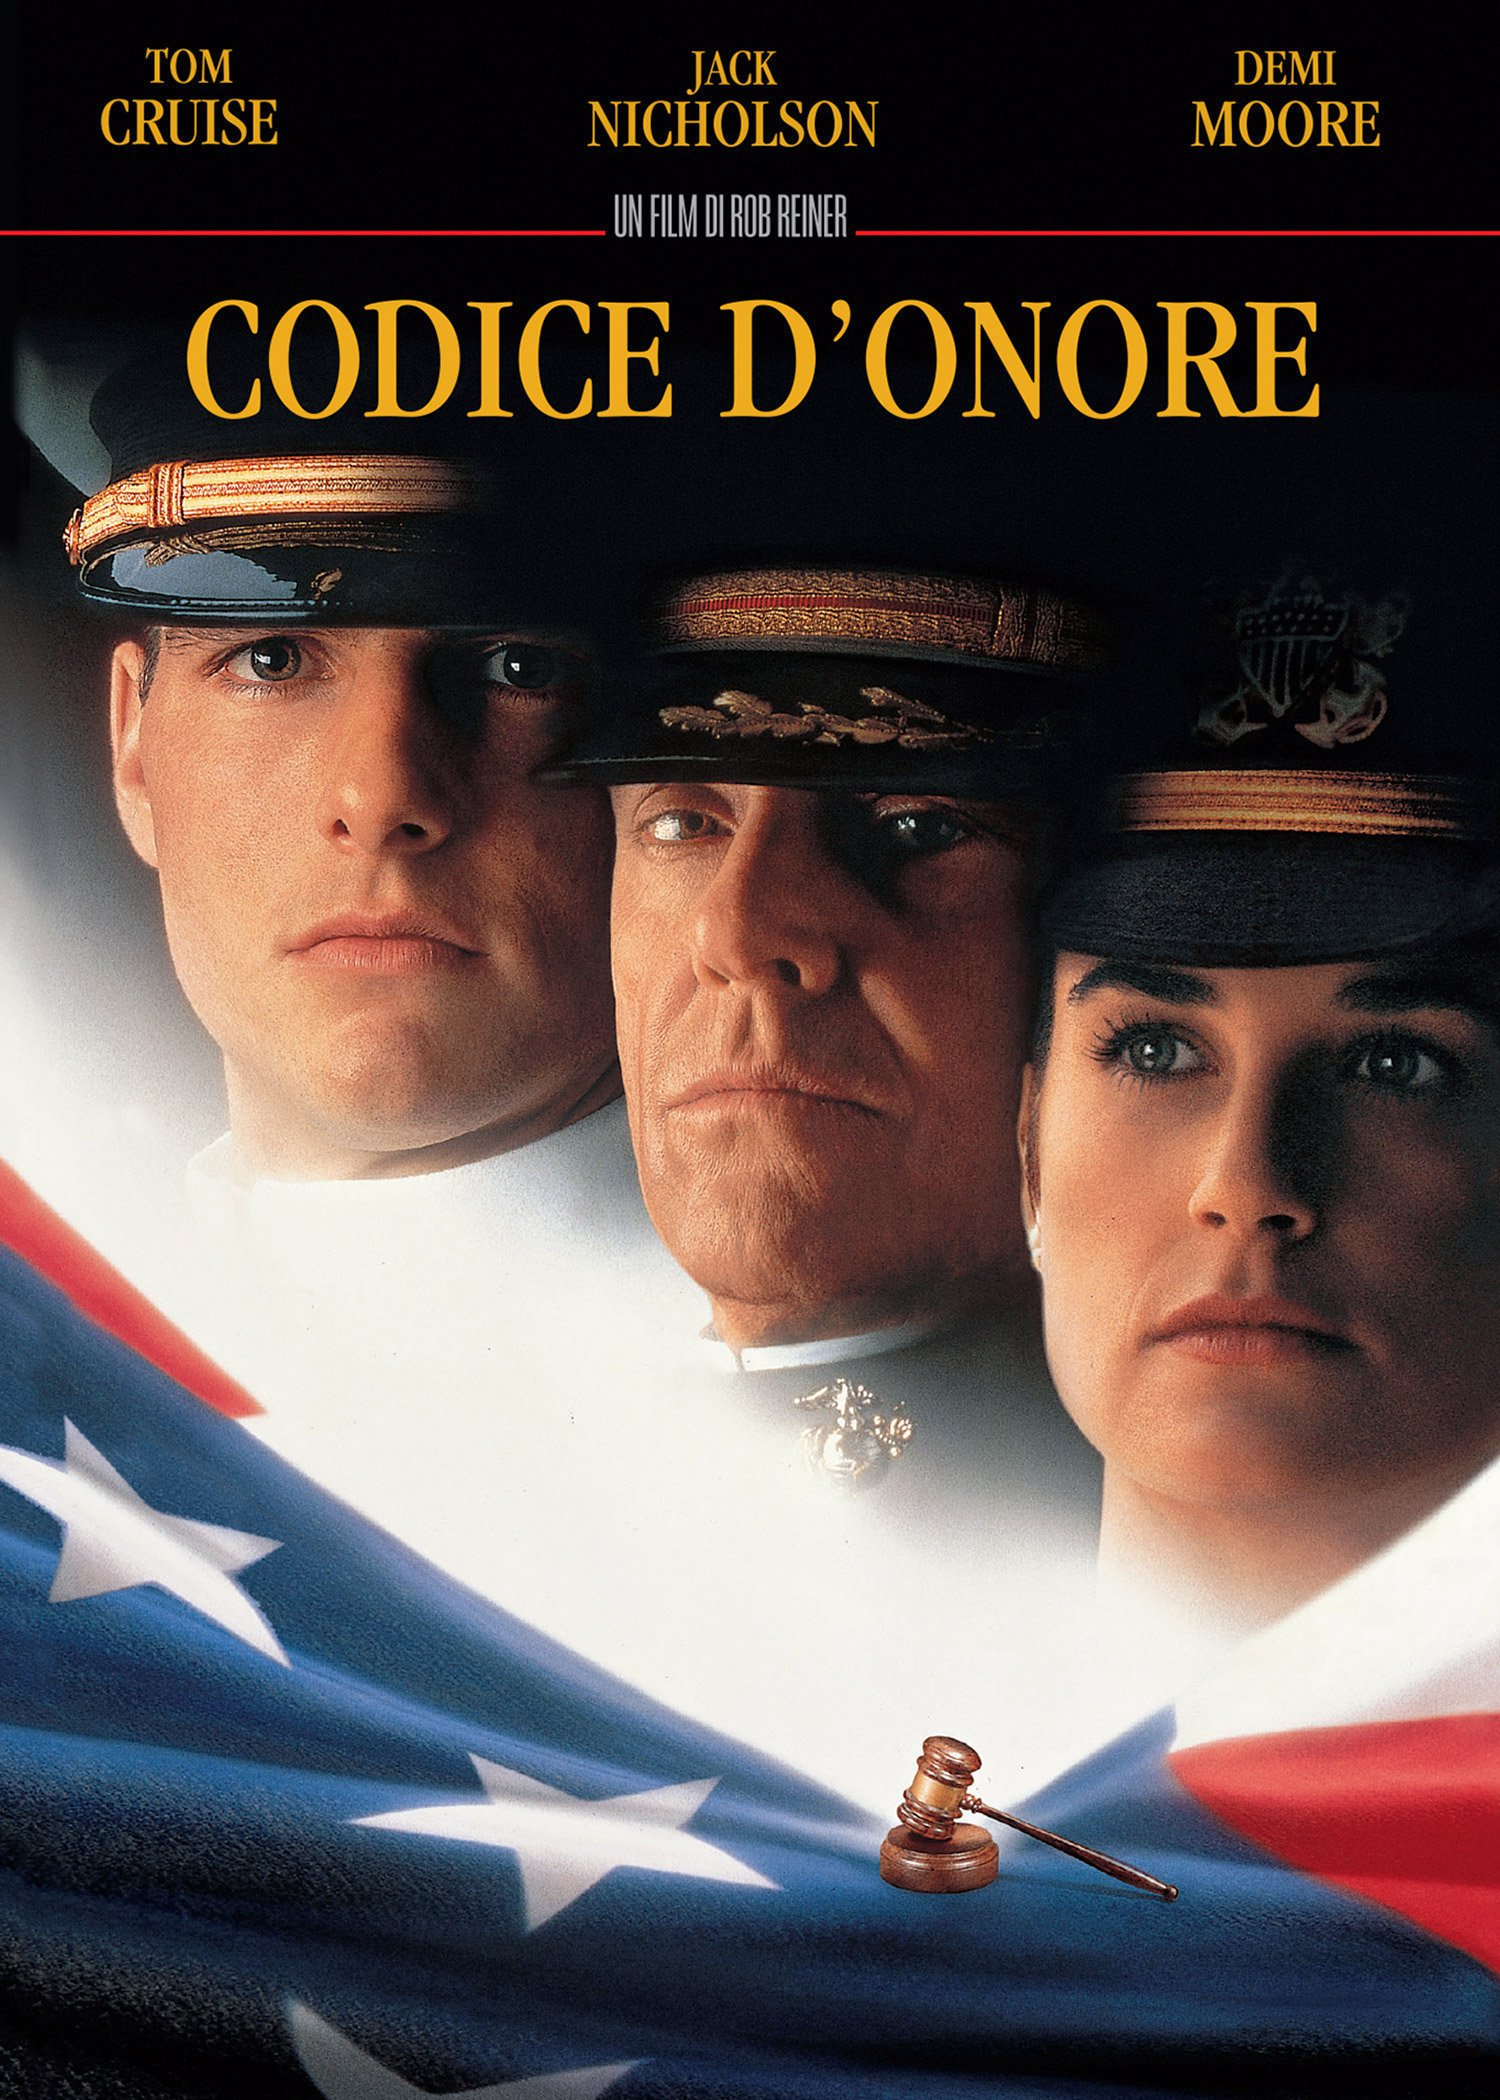 Image of Codice D'onore